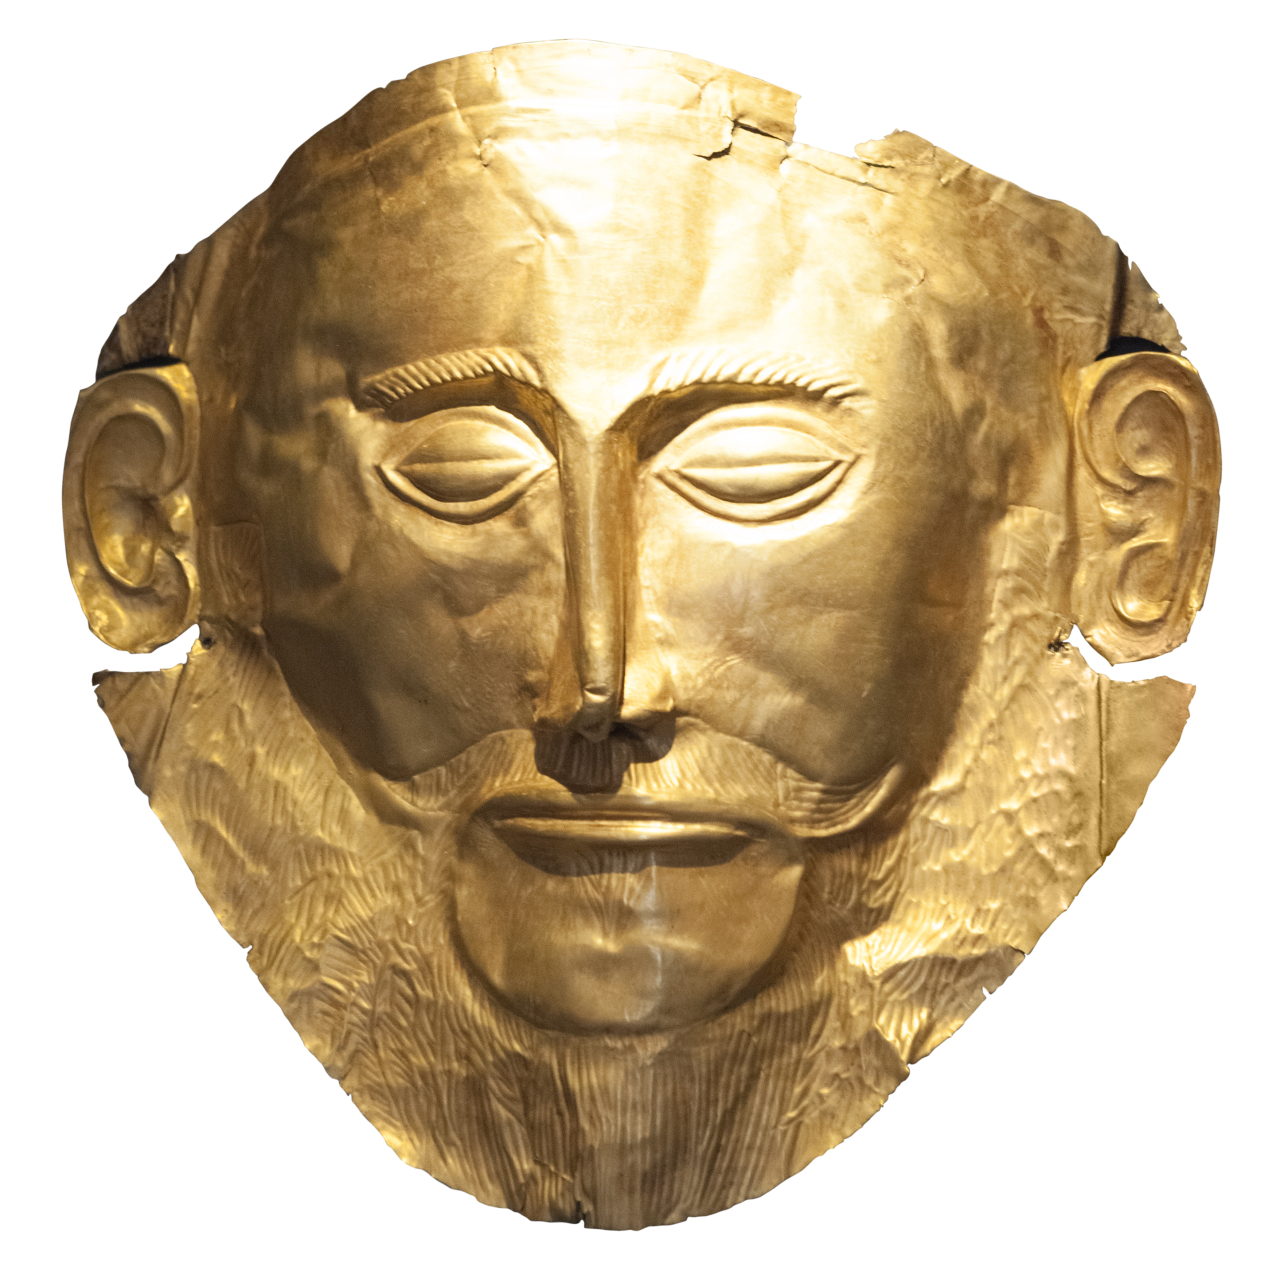 A replica of the golden mask of Agamemnon from the collection of the Archaeological Museum of Mycenae (Ministry of Culture and Sports of Greece)